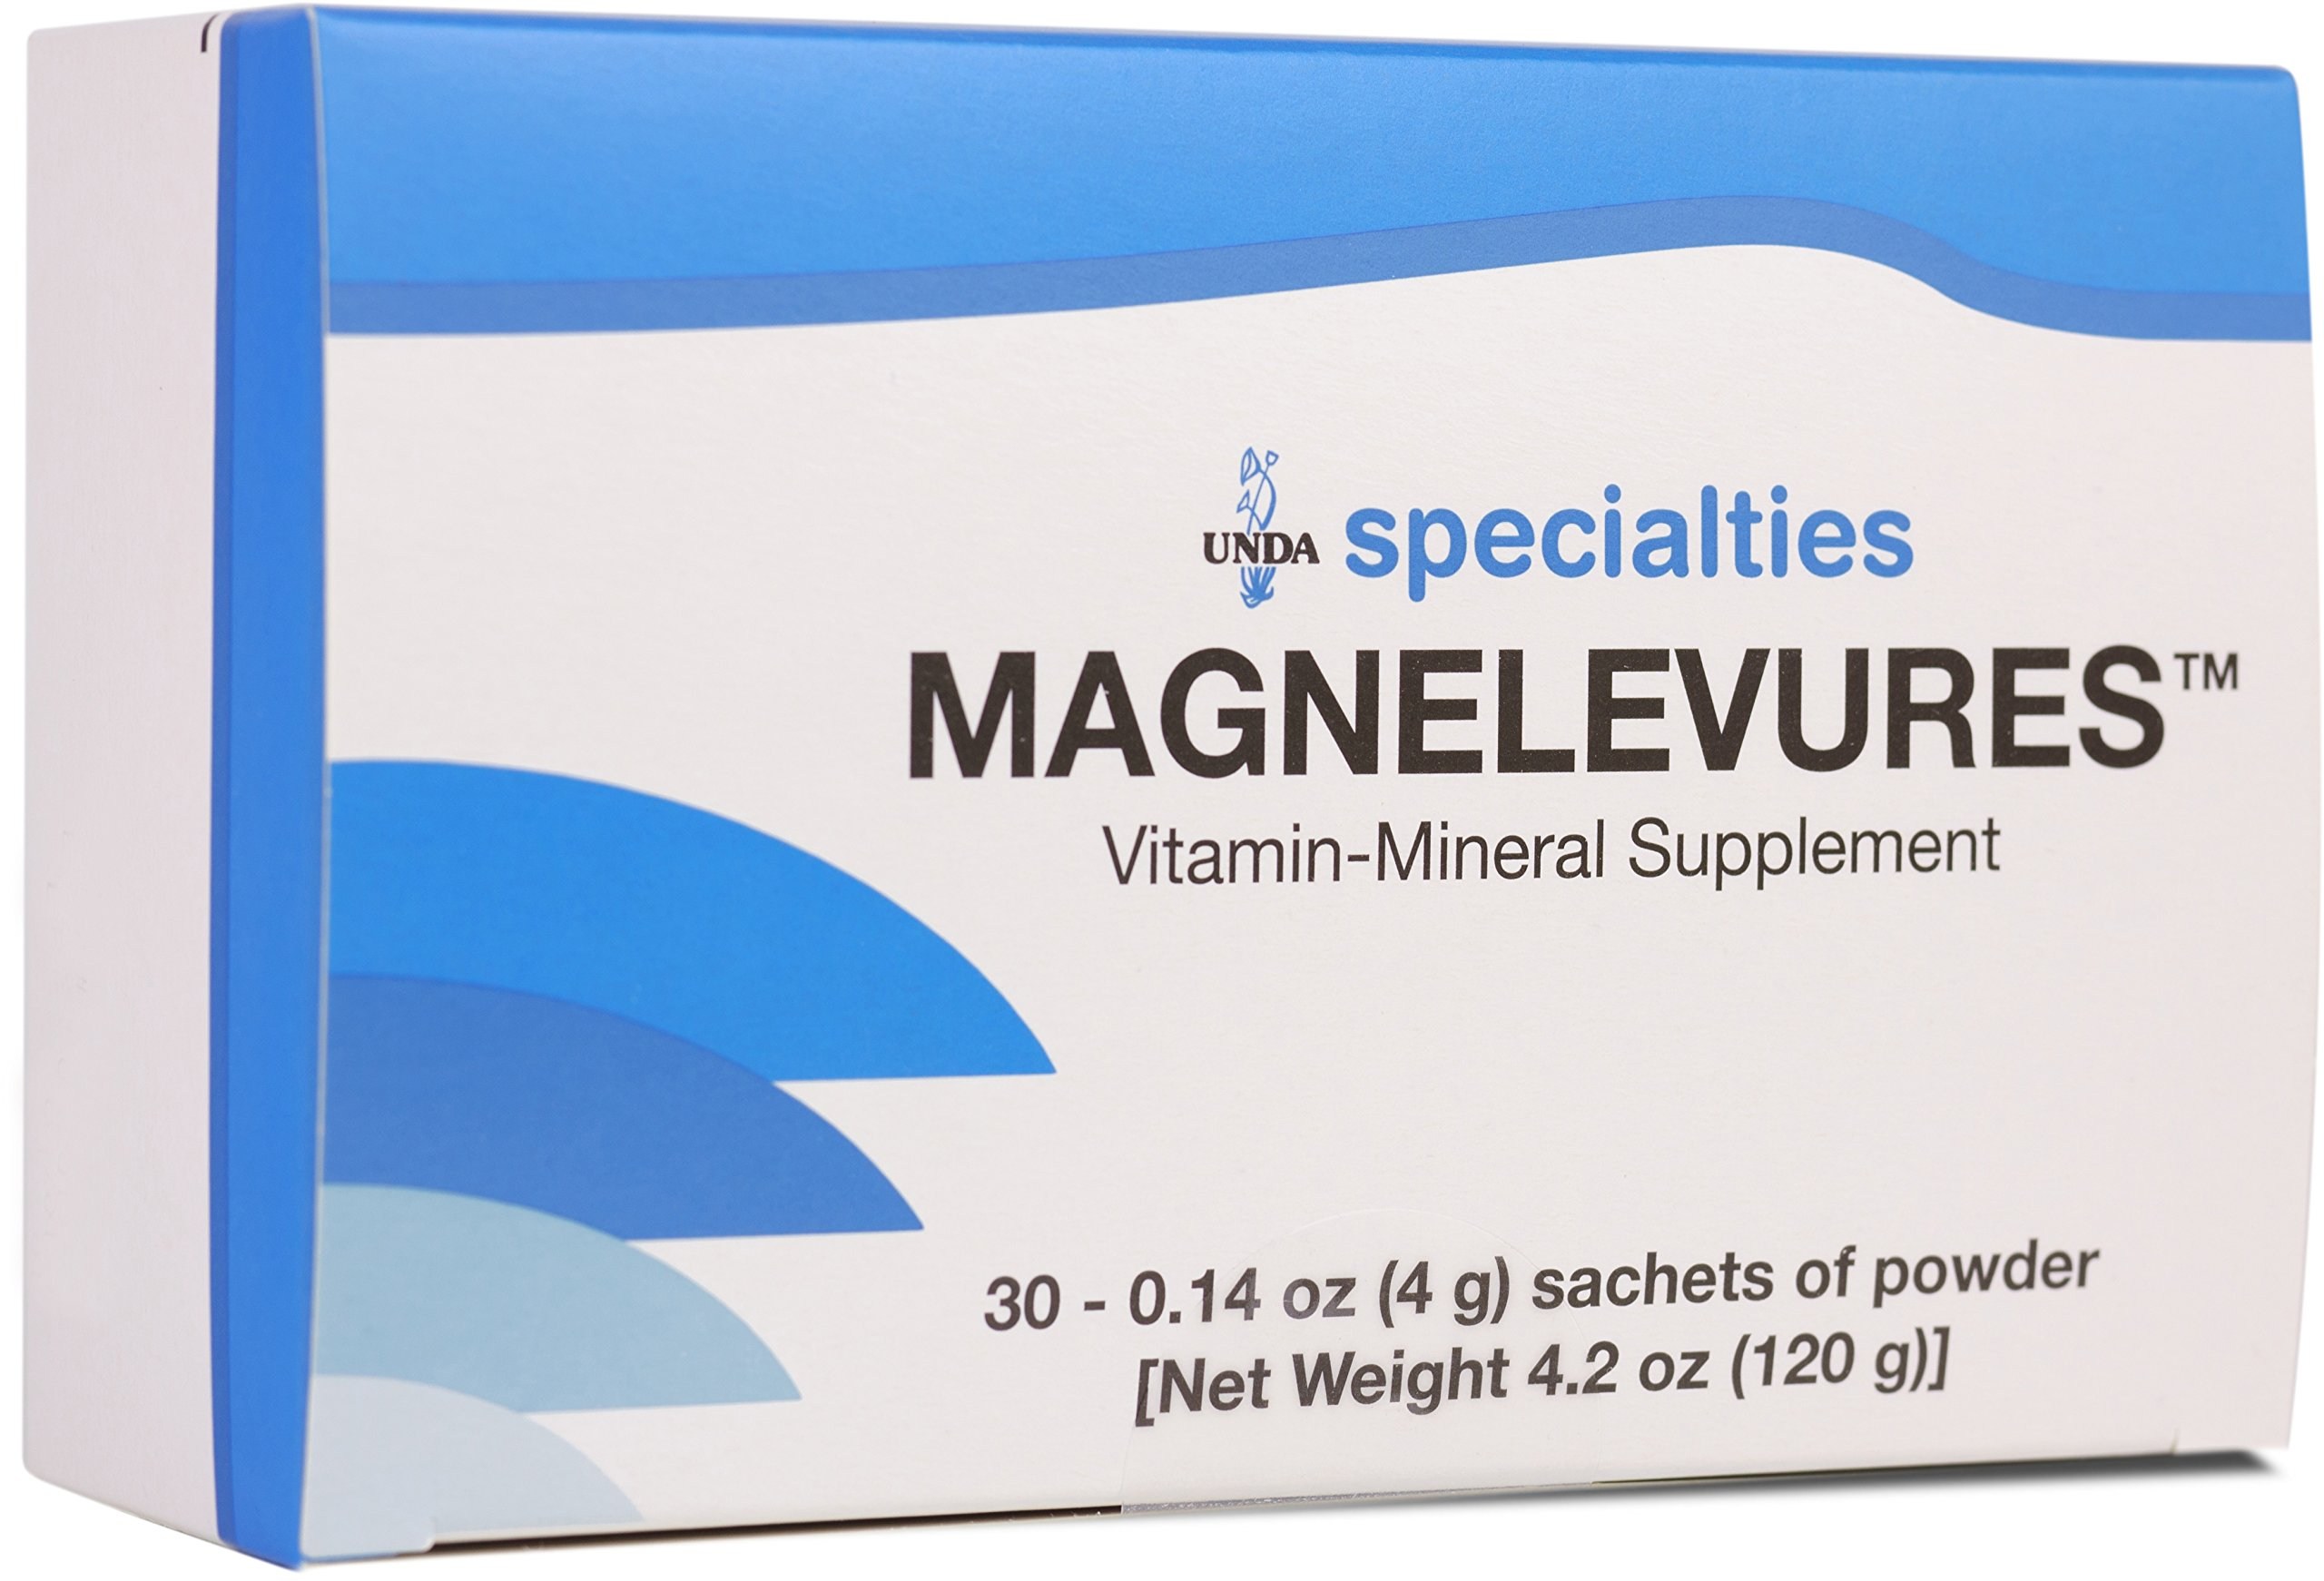 UNDA - Magnelevures - Vitamin Mineral Supplement to Support Musculoskeletal System* - 30 Servings by UNDA